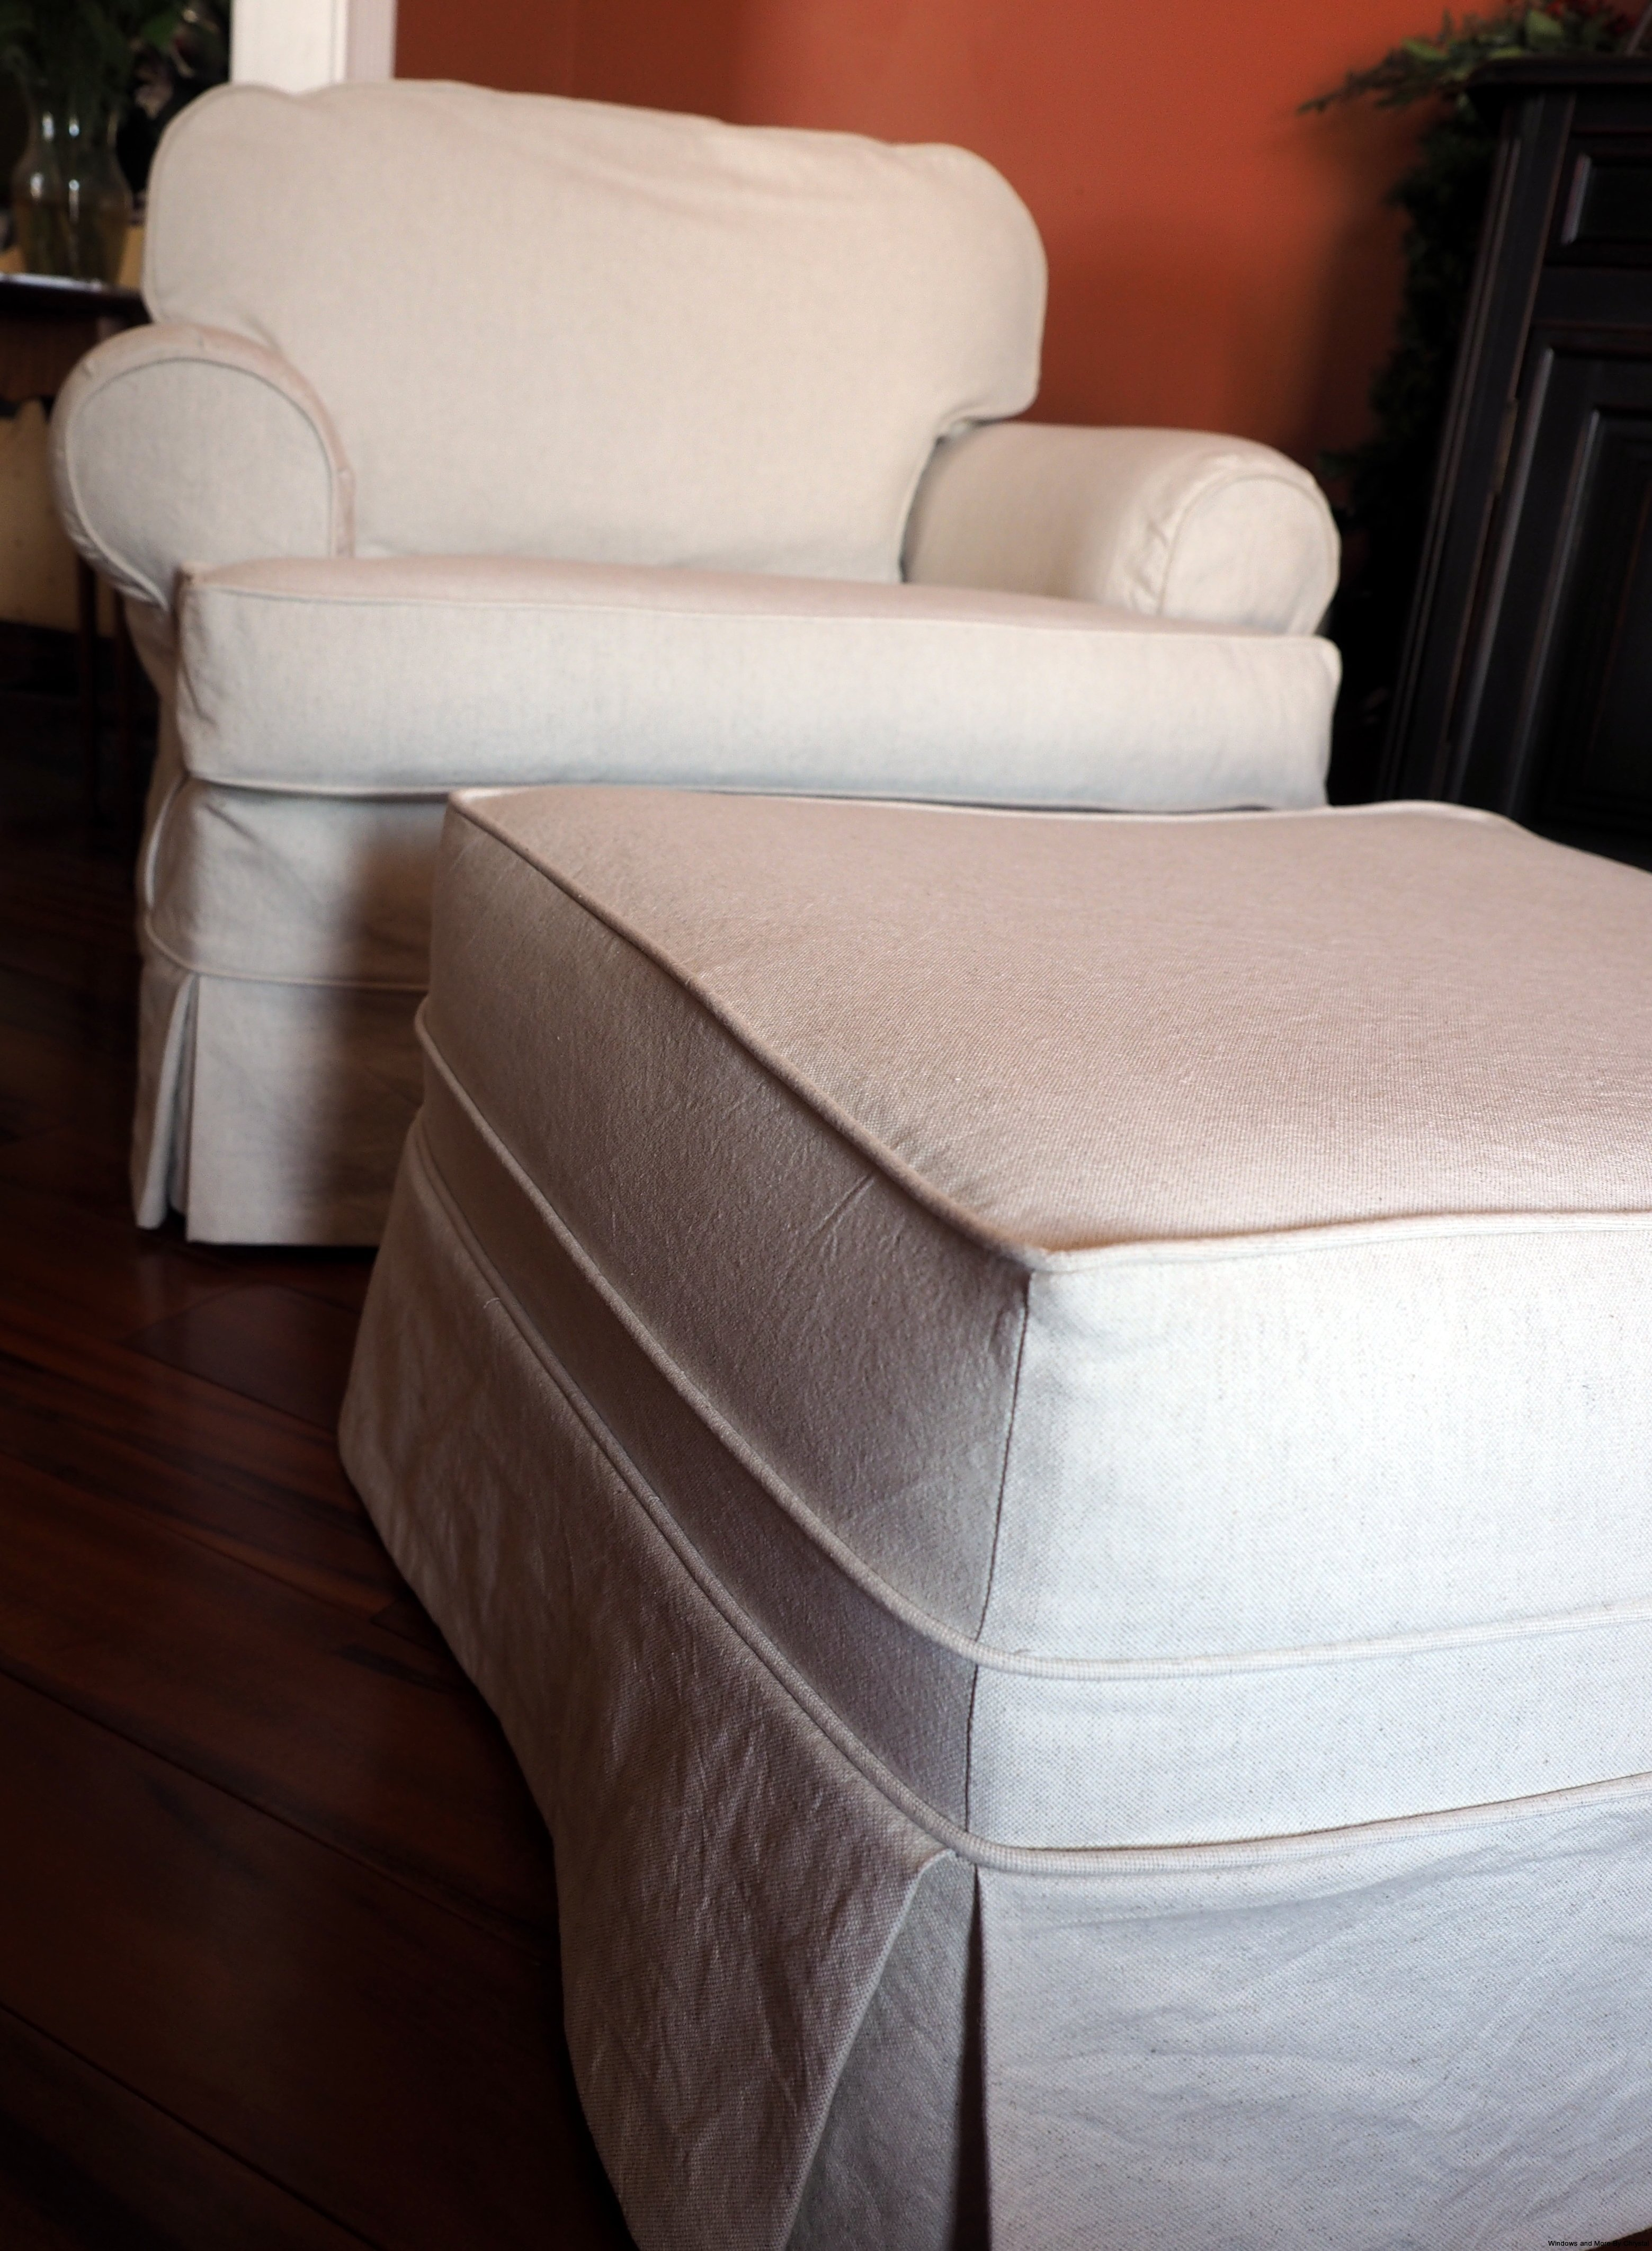 Ordinaire White Canvas Slipcovered Chair And Ottoman